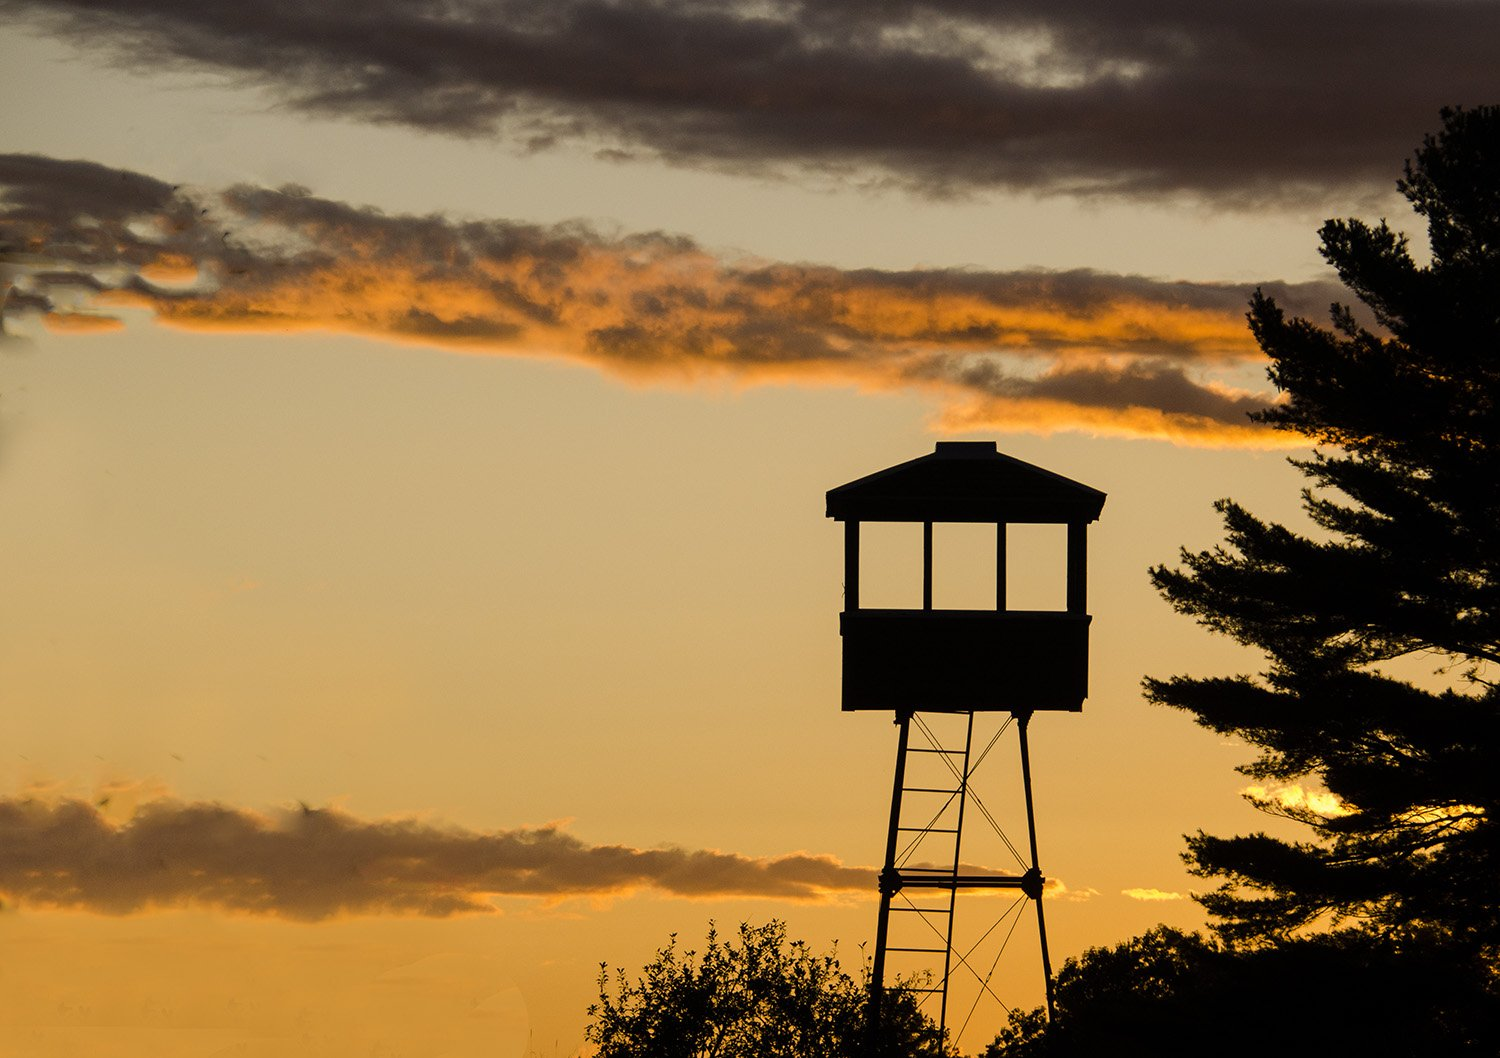 The wildlife tower at sunset